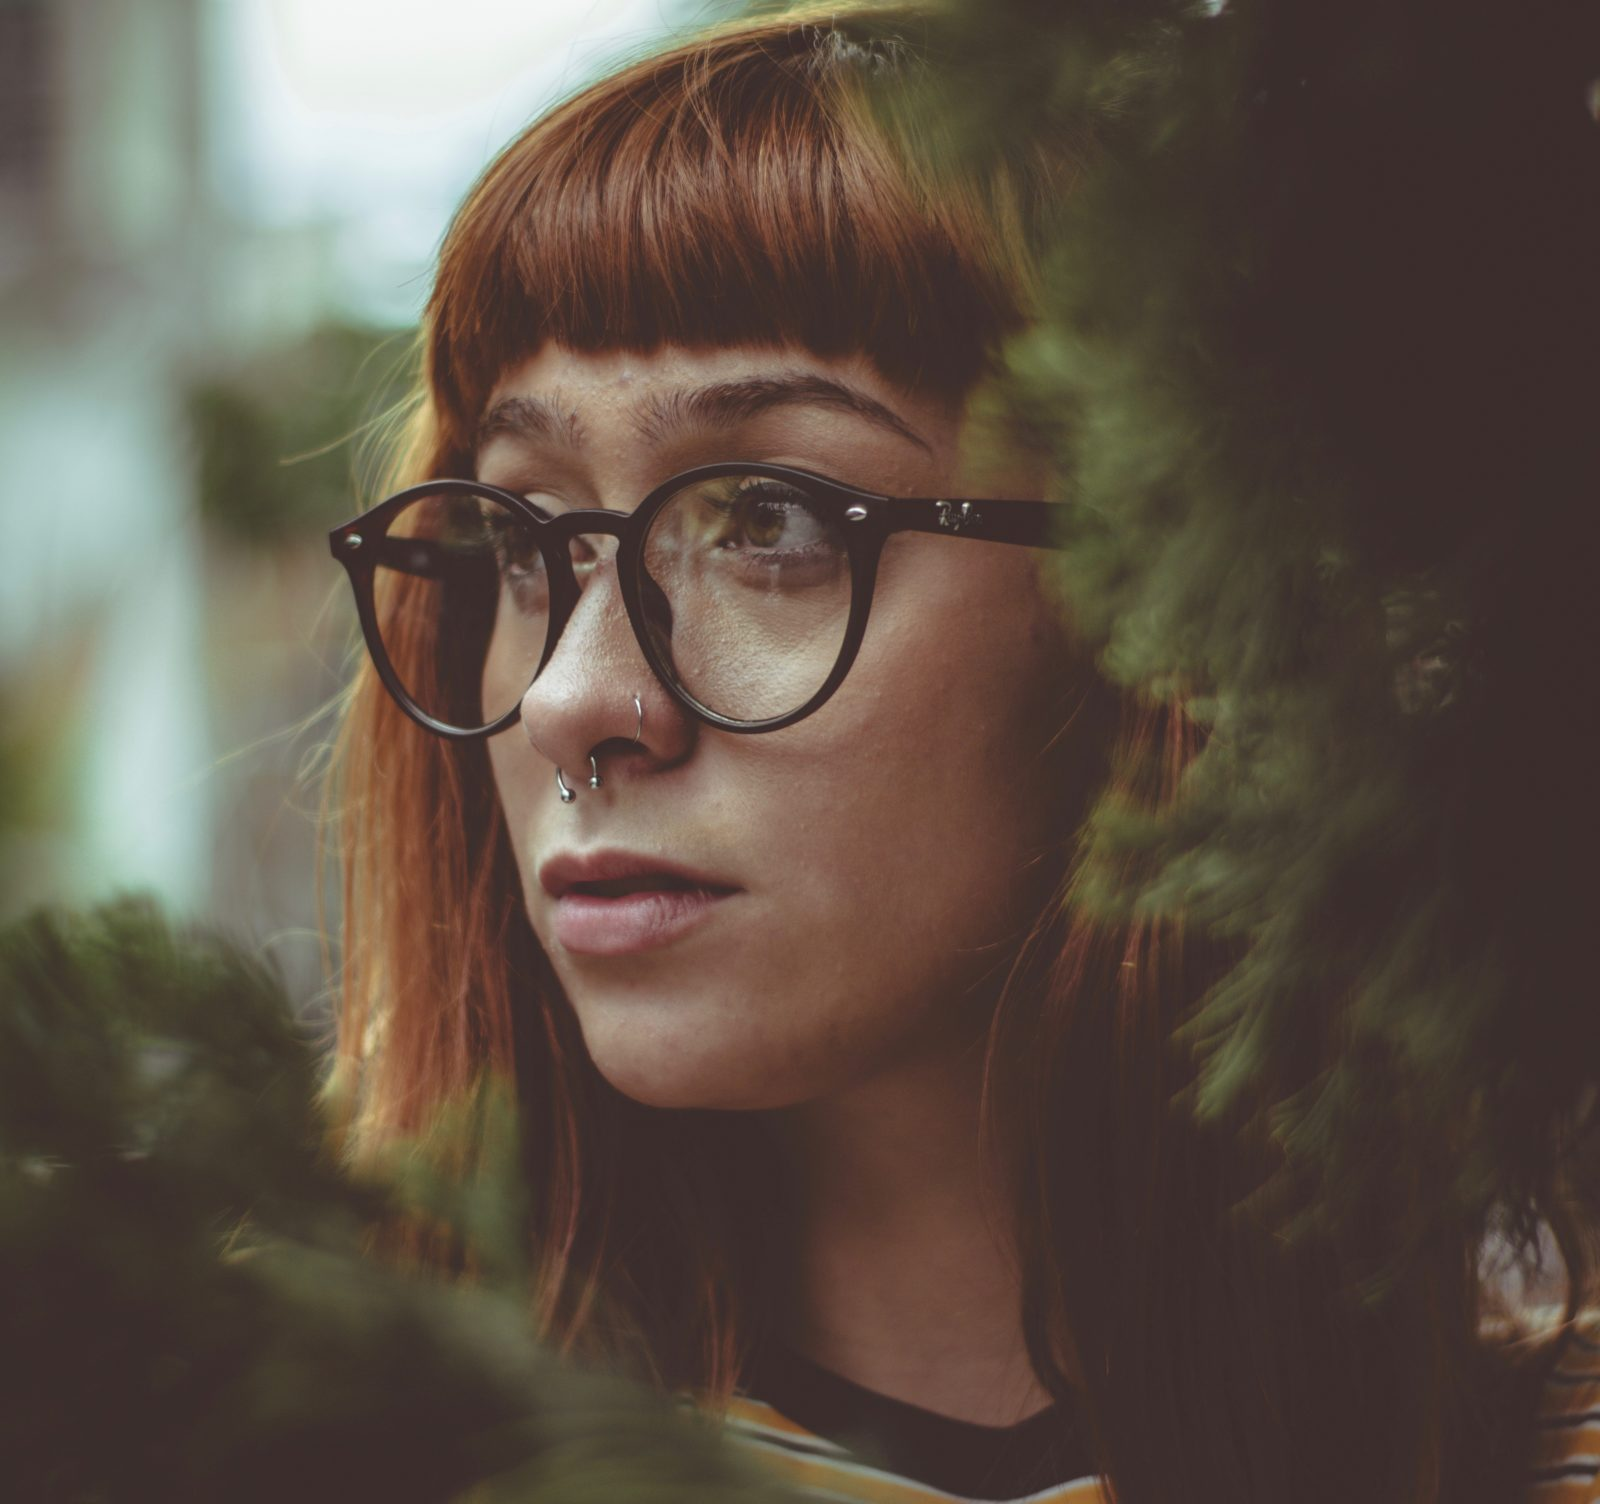 Septum Piercings Are They Painful And Should You Get One